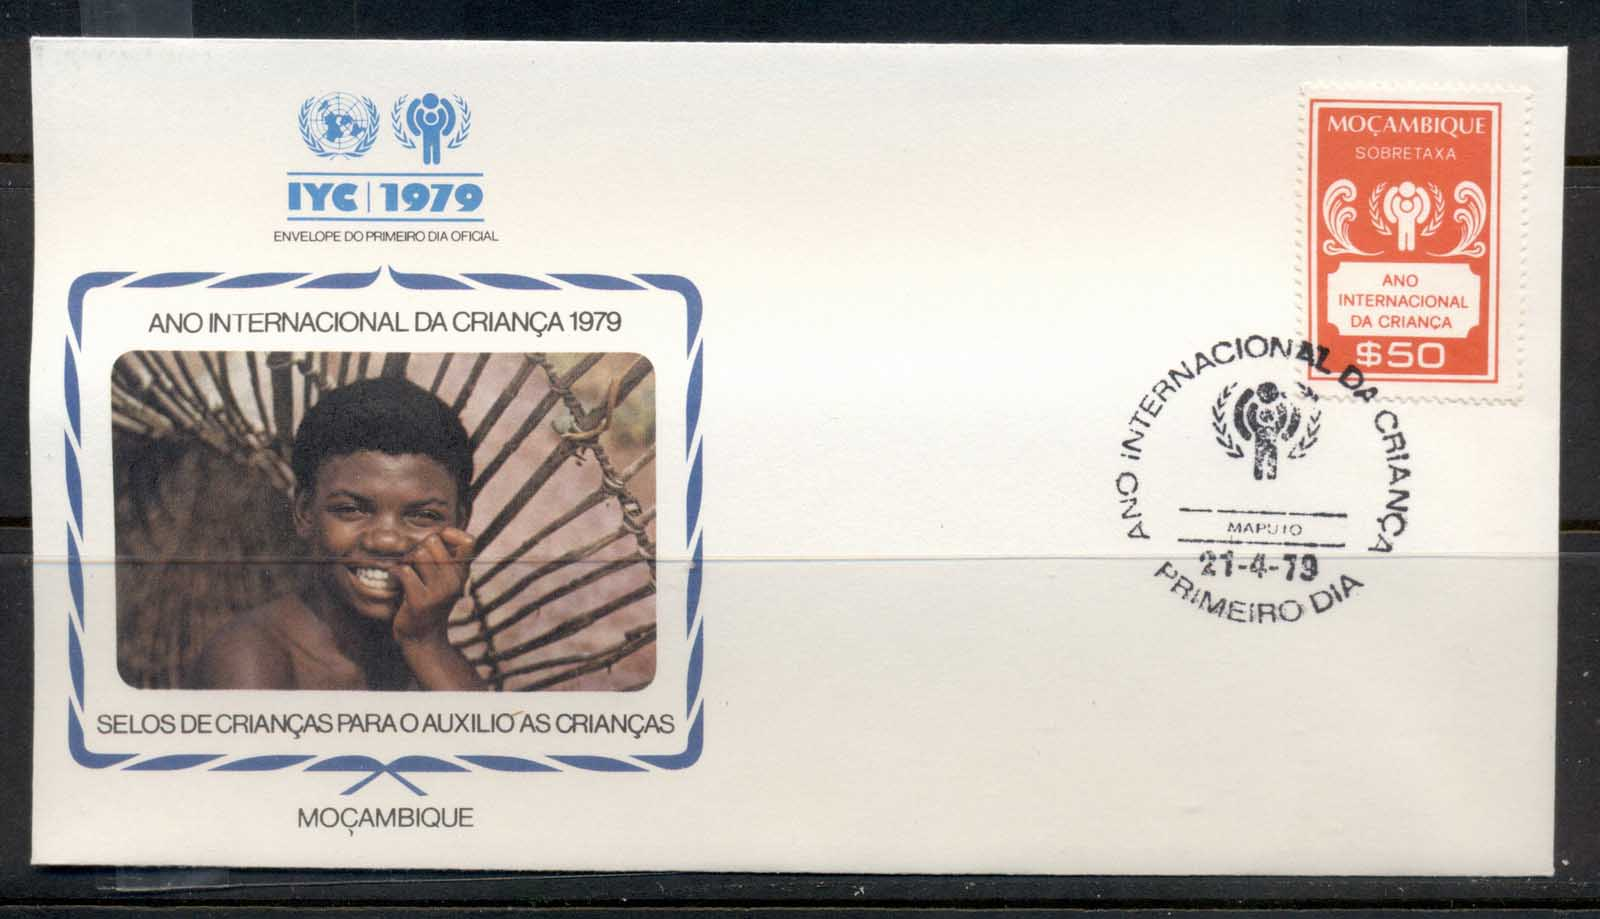 Mozambique 1979 IYC International year of the Child FDC